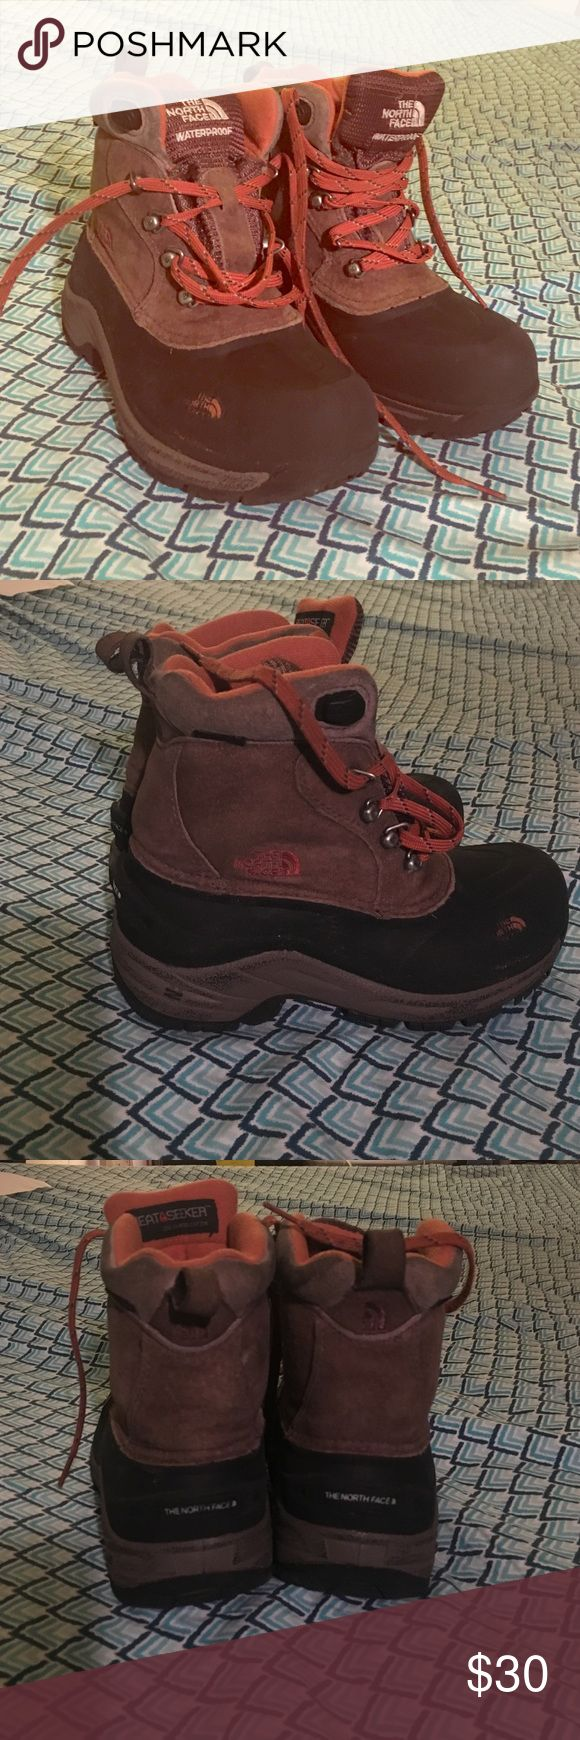 Boys Heat seeker Northface boots size 2 Slightly worn, great condition, great for winter/snow weather The North Face Shoes Boots